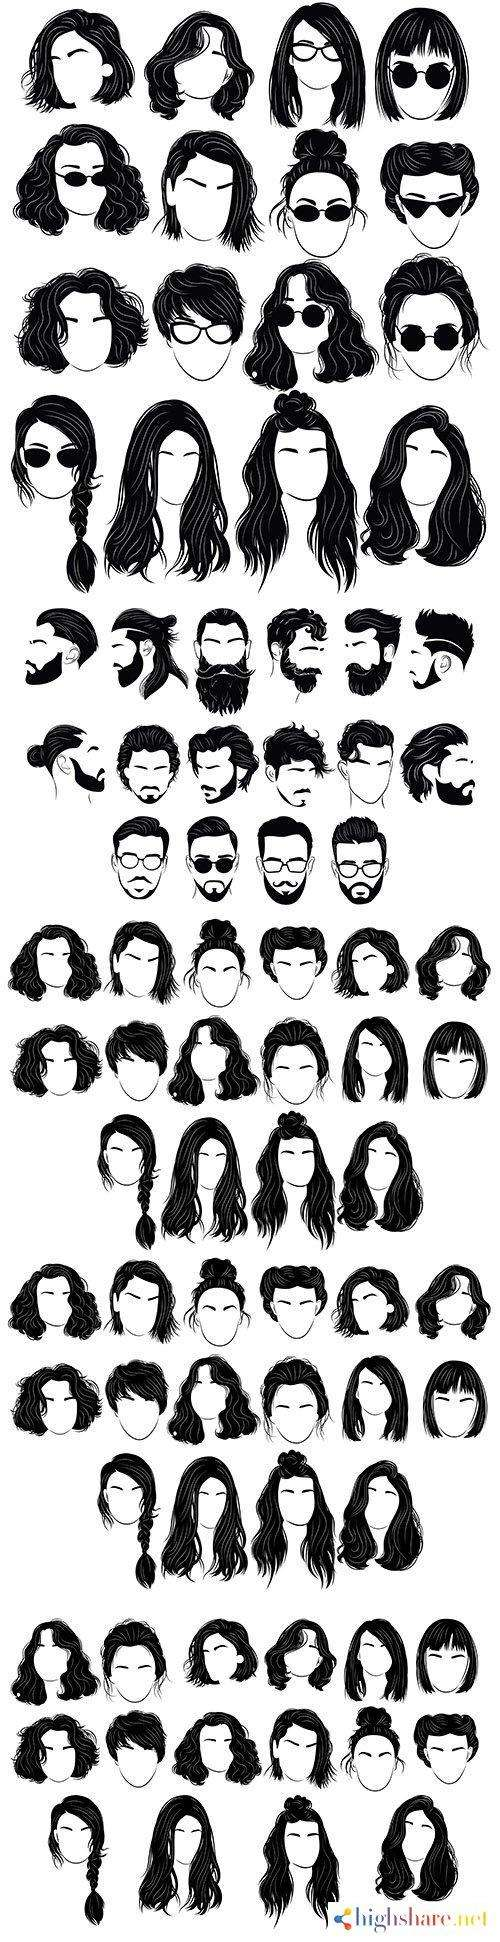 female and male hairstyle design silhouettes 5f42292bd7056 - Female and male hairstyle design silhouettes